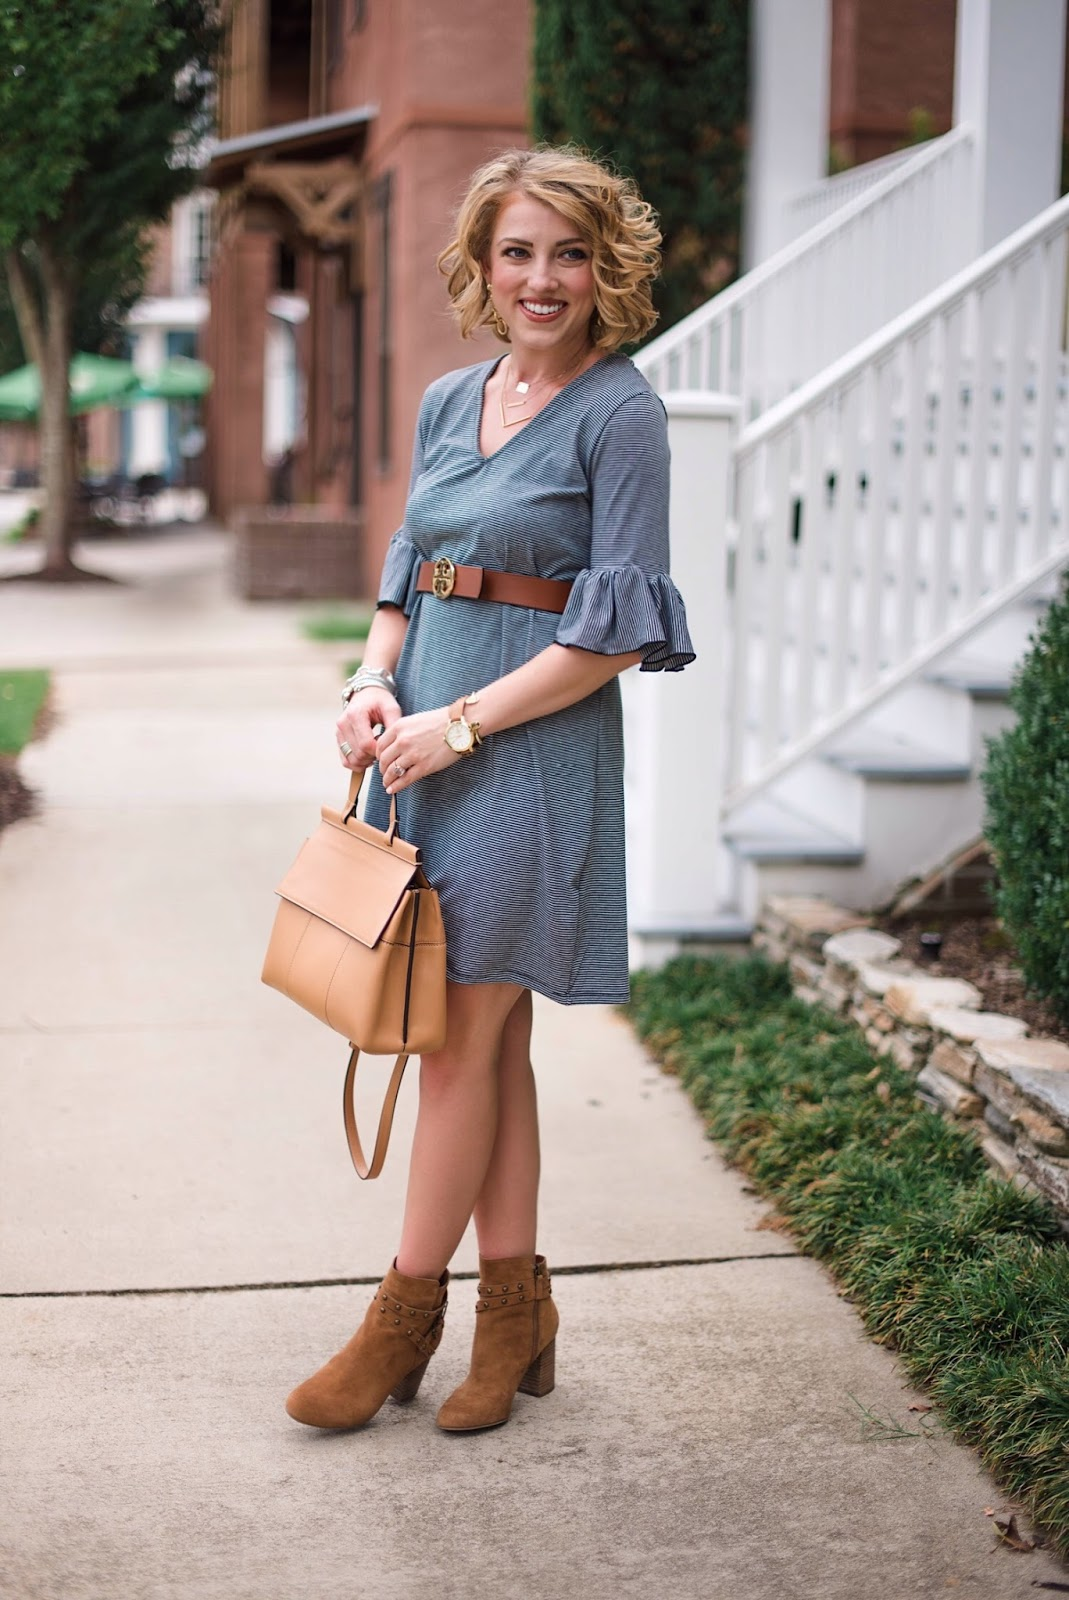 Transitioning into fall outfit - Click through to see more on Something Delightful Blog!